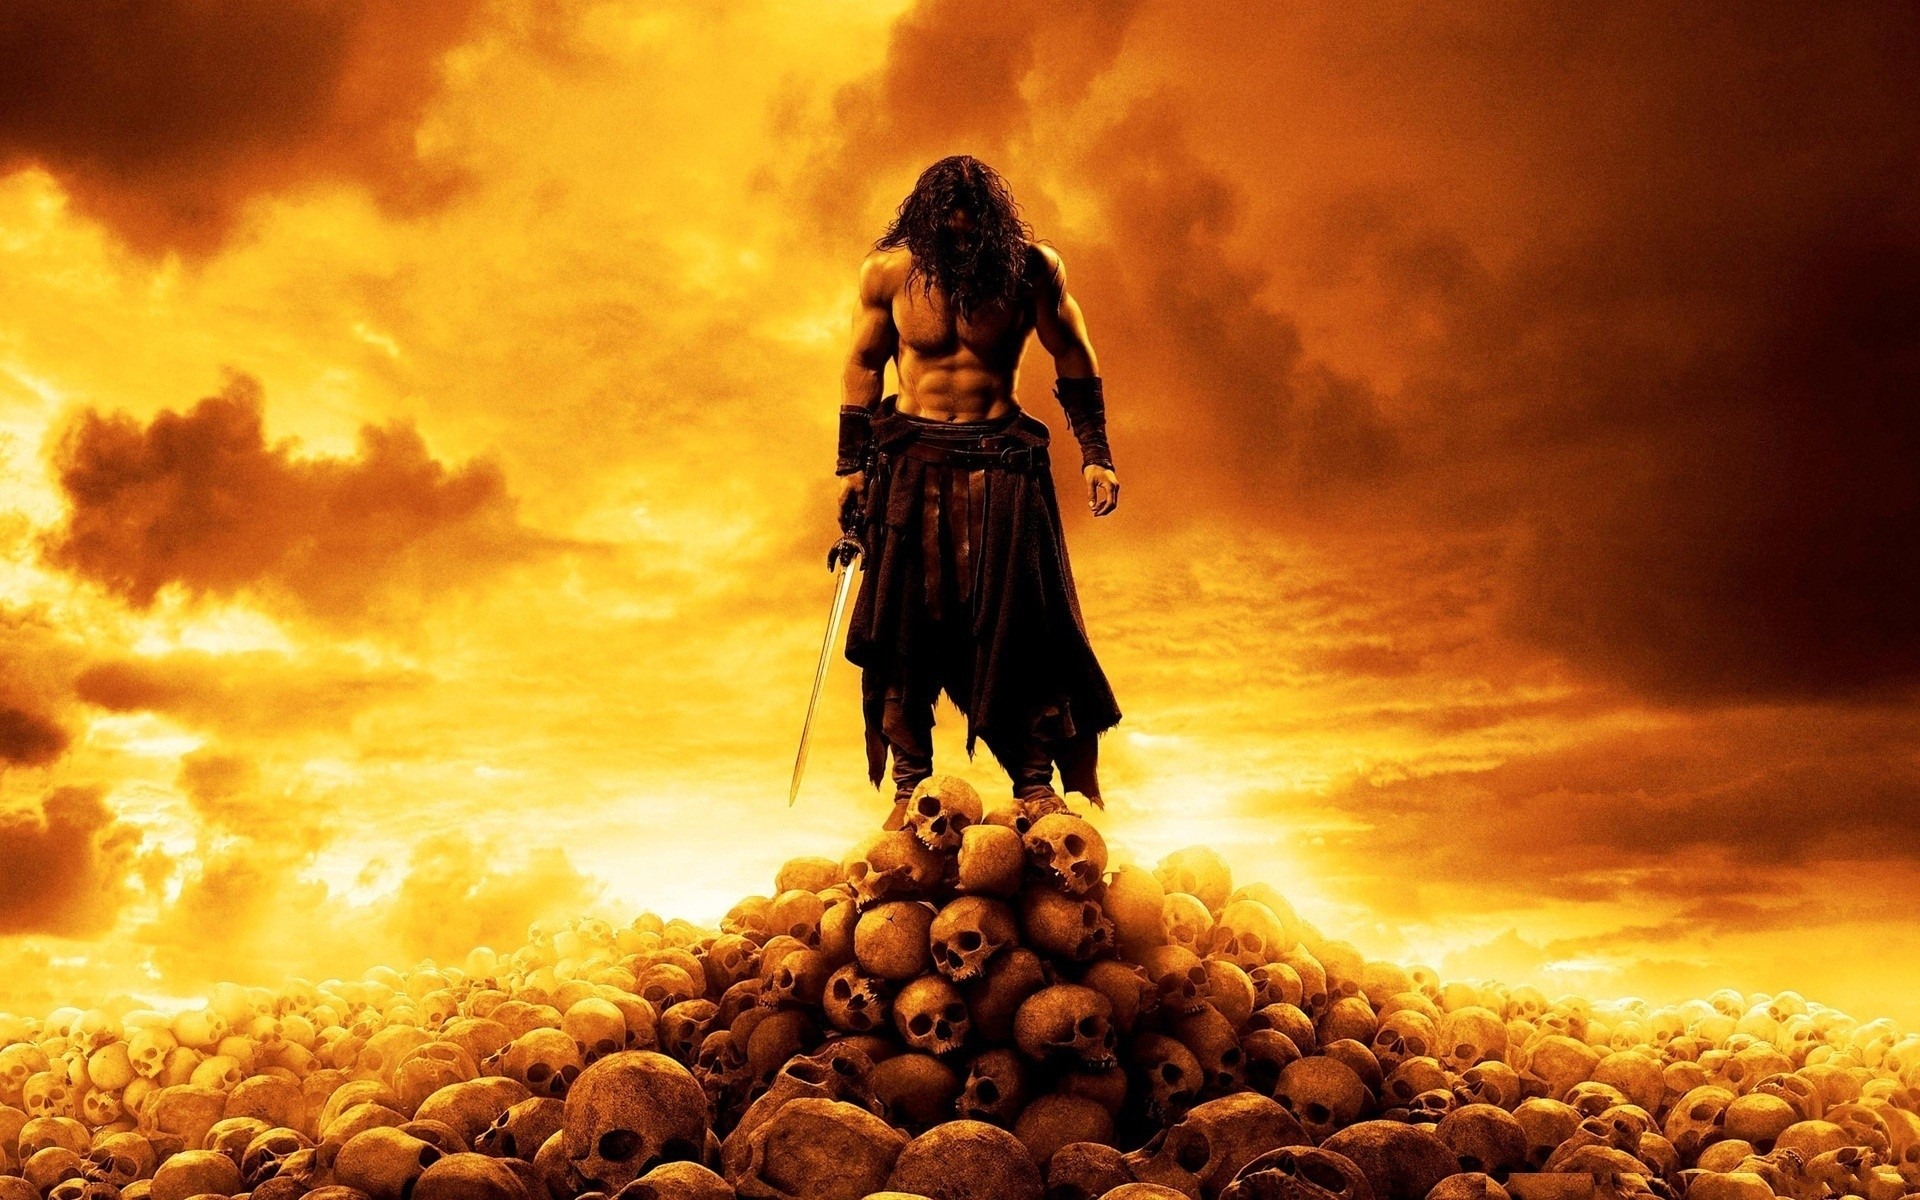 A warrior with a sword on a mountain of human skulls